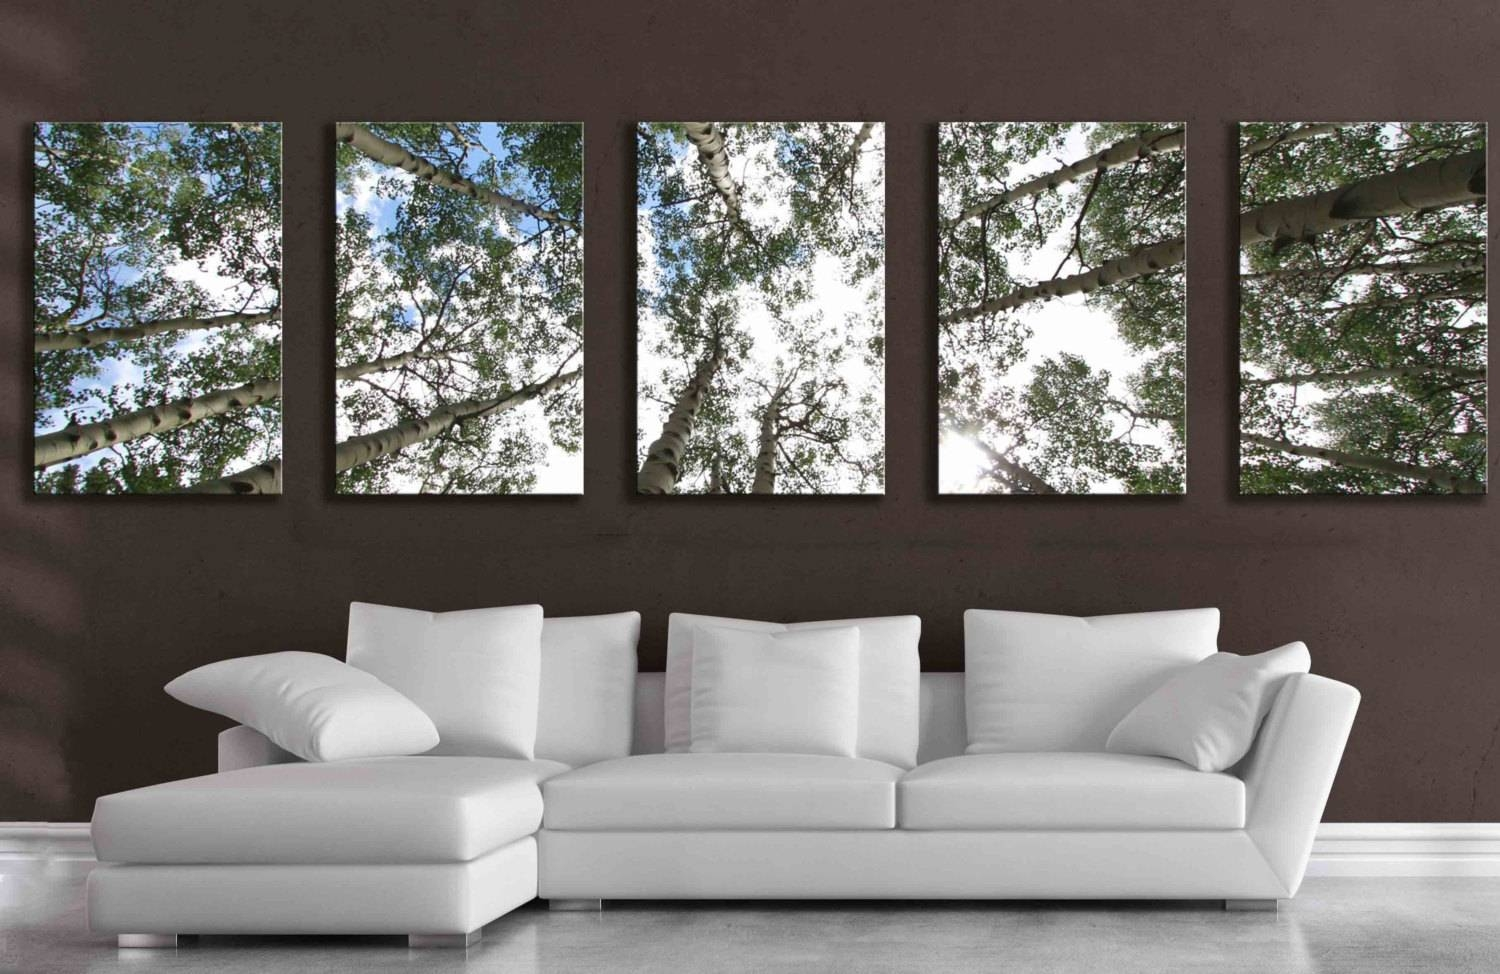 Large 5 Panel Wall Art Aspen Tree Canvas Decor Five Multipiece With Regard To Recent Large Green Wall Art (View 11 of 20)